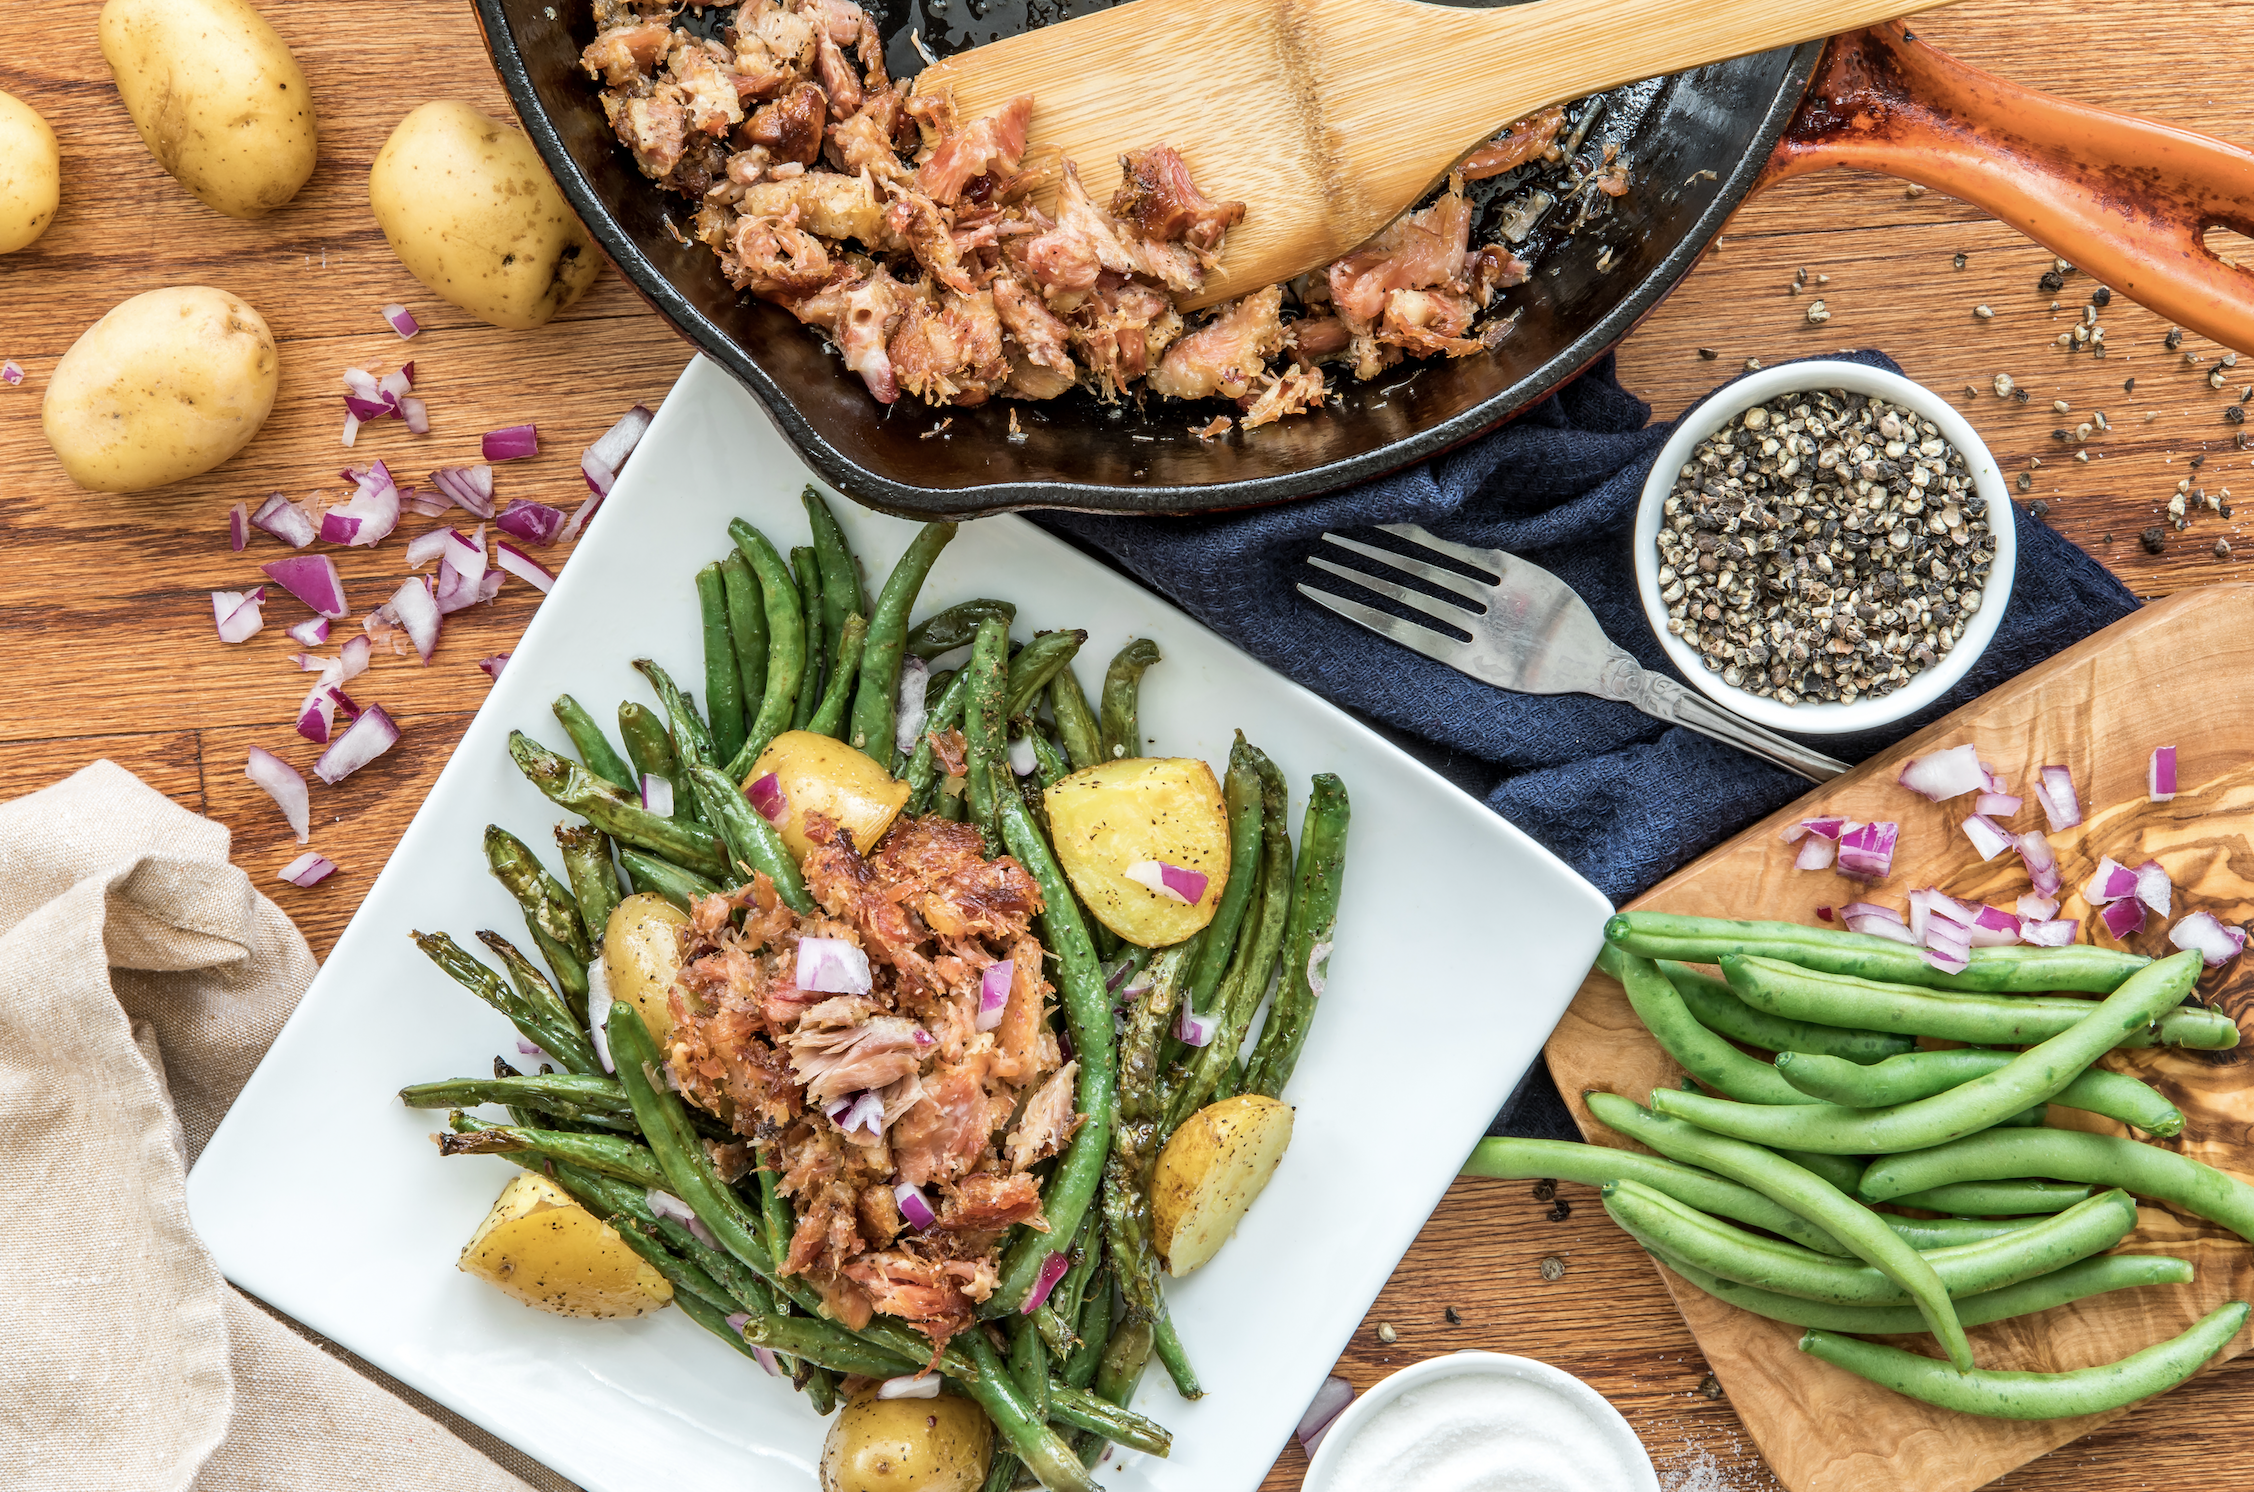 Roasted Green Bean Salad with Smoked Turkey Tails